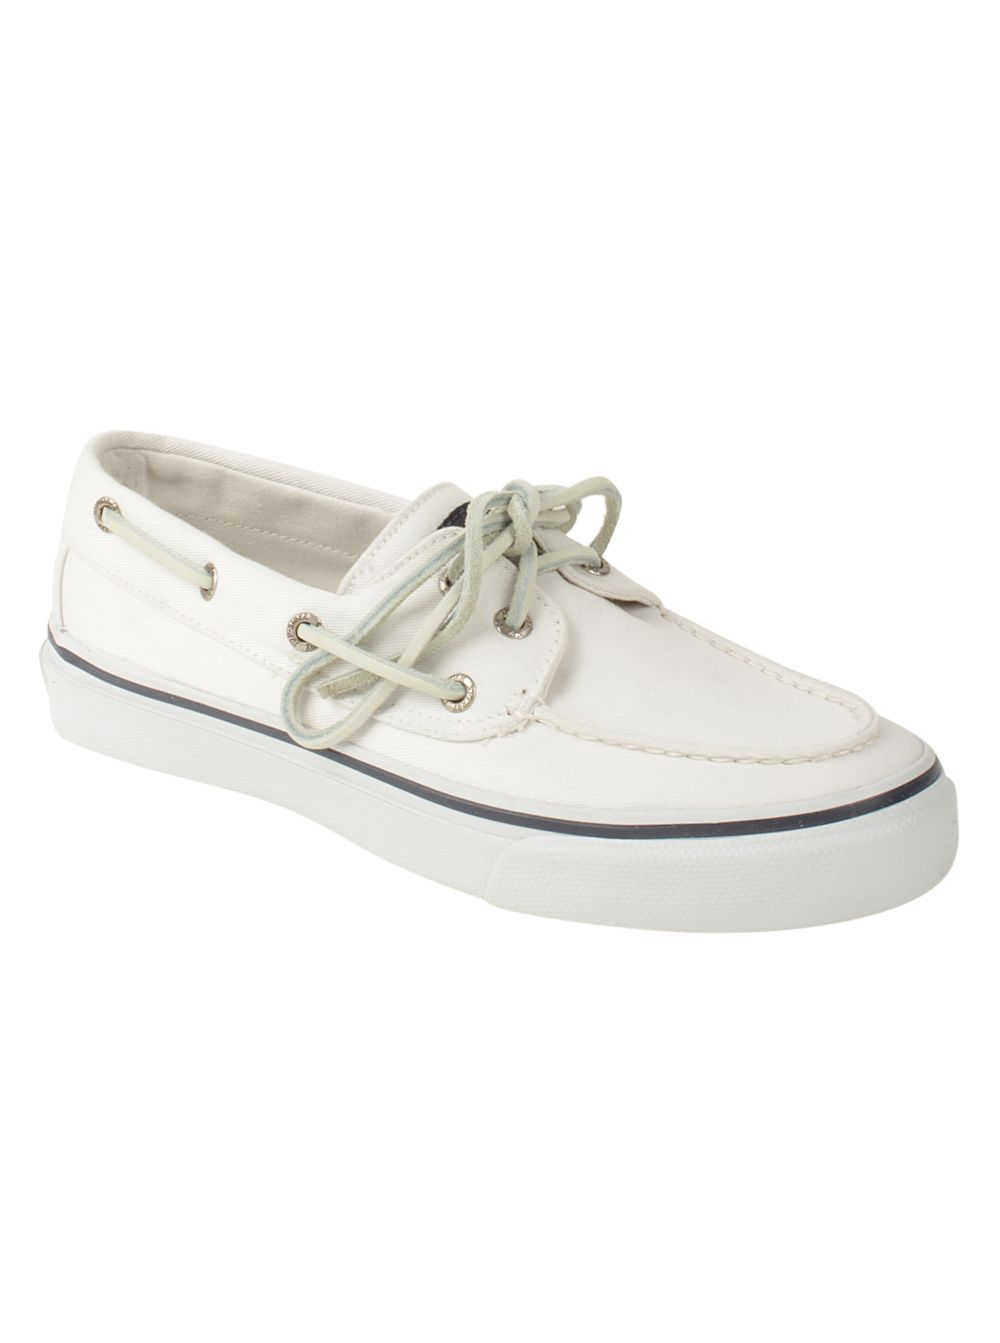 Sperry top sider men, White boat shoes